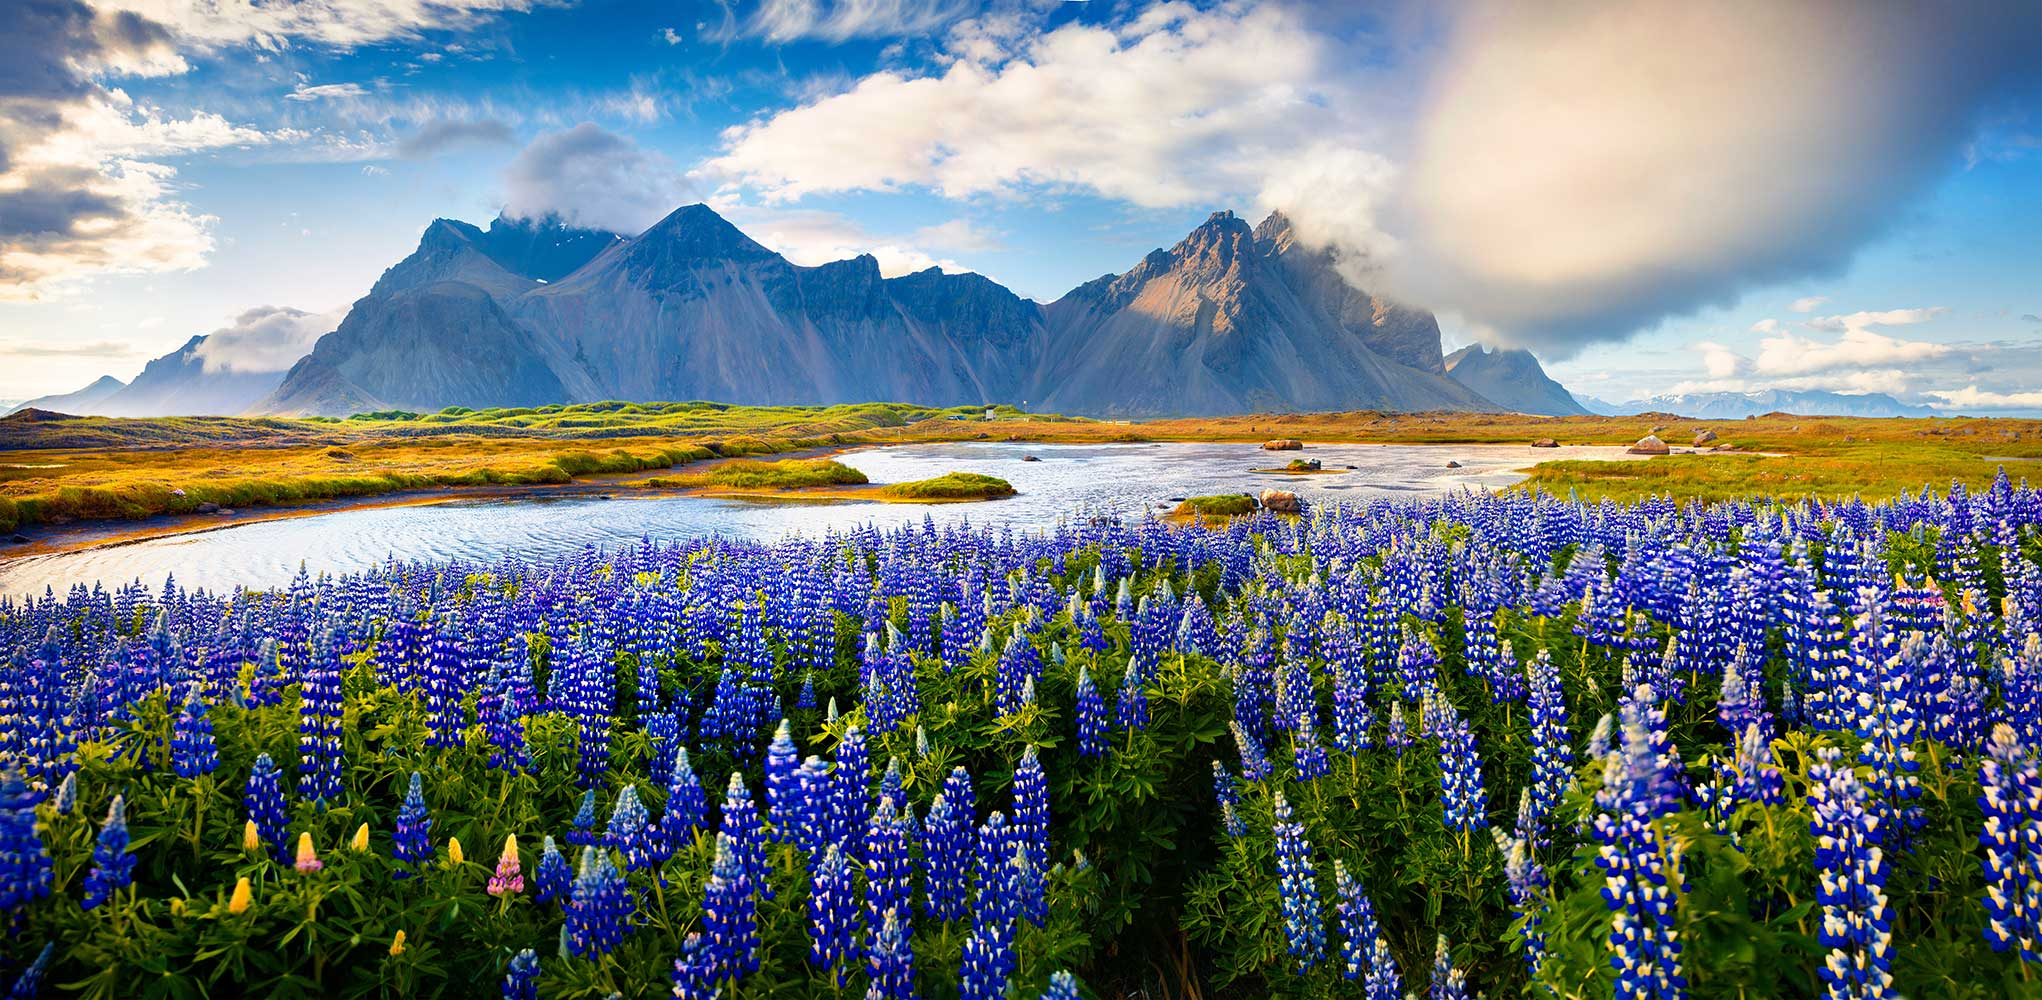 Safe to travel to Iceland this summer? - Deluxe Iceland